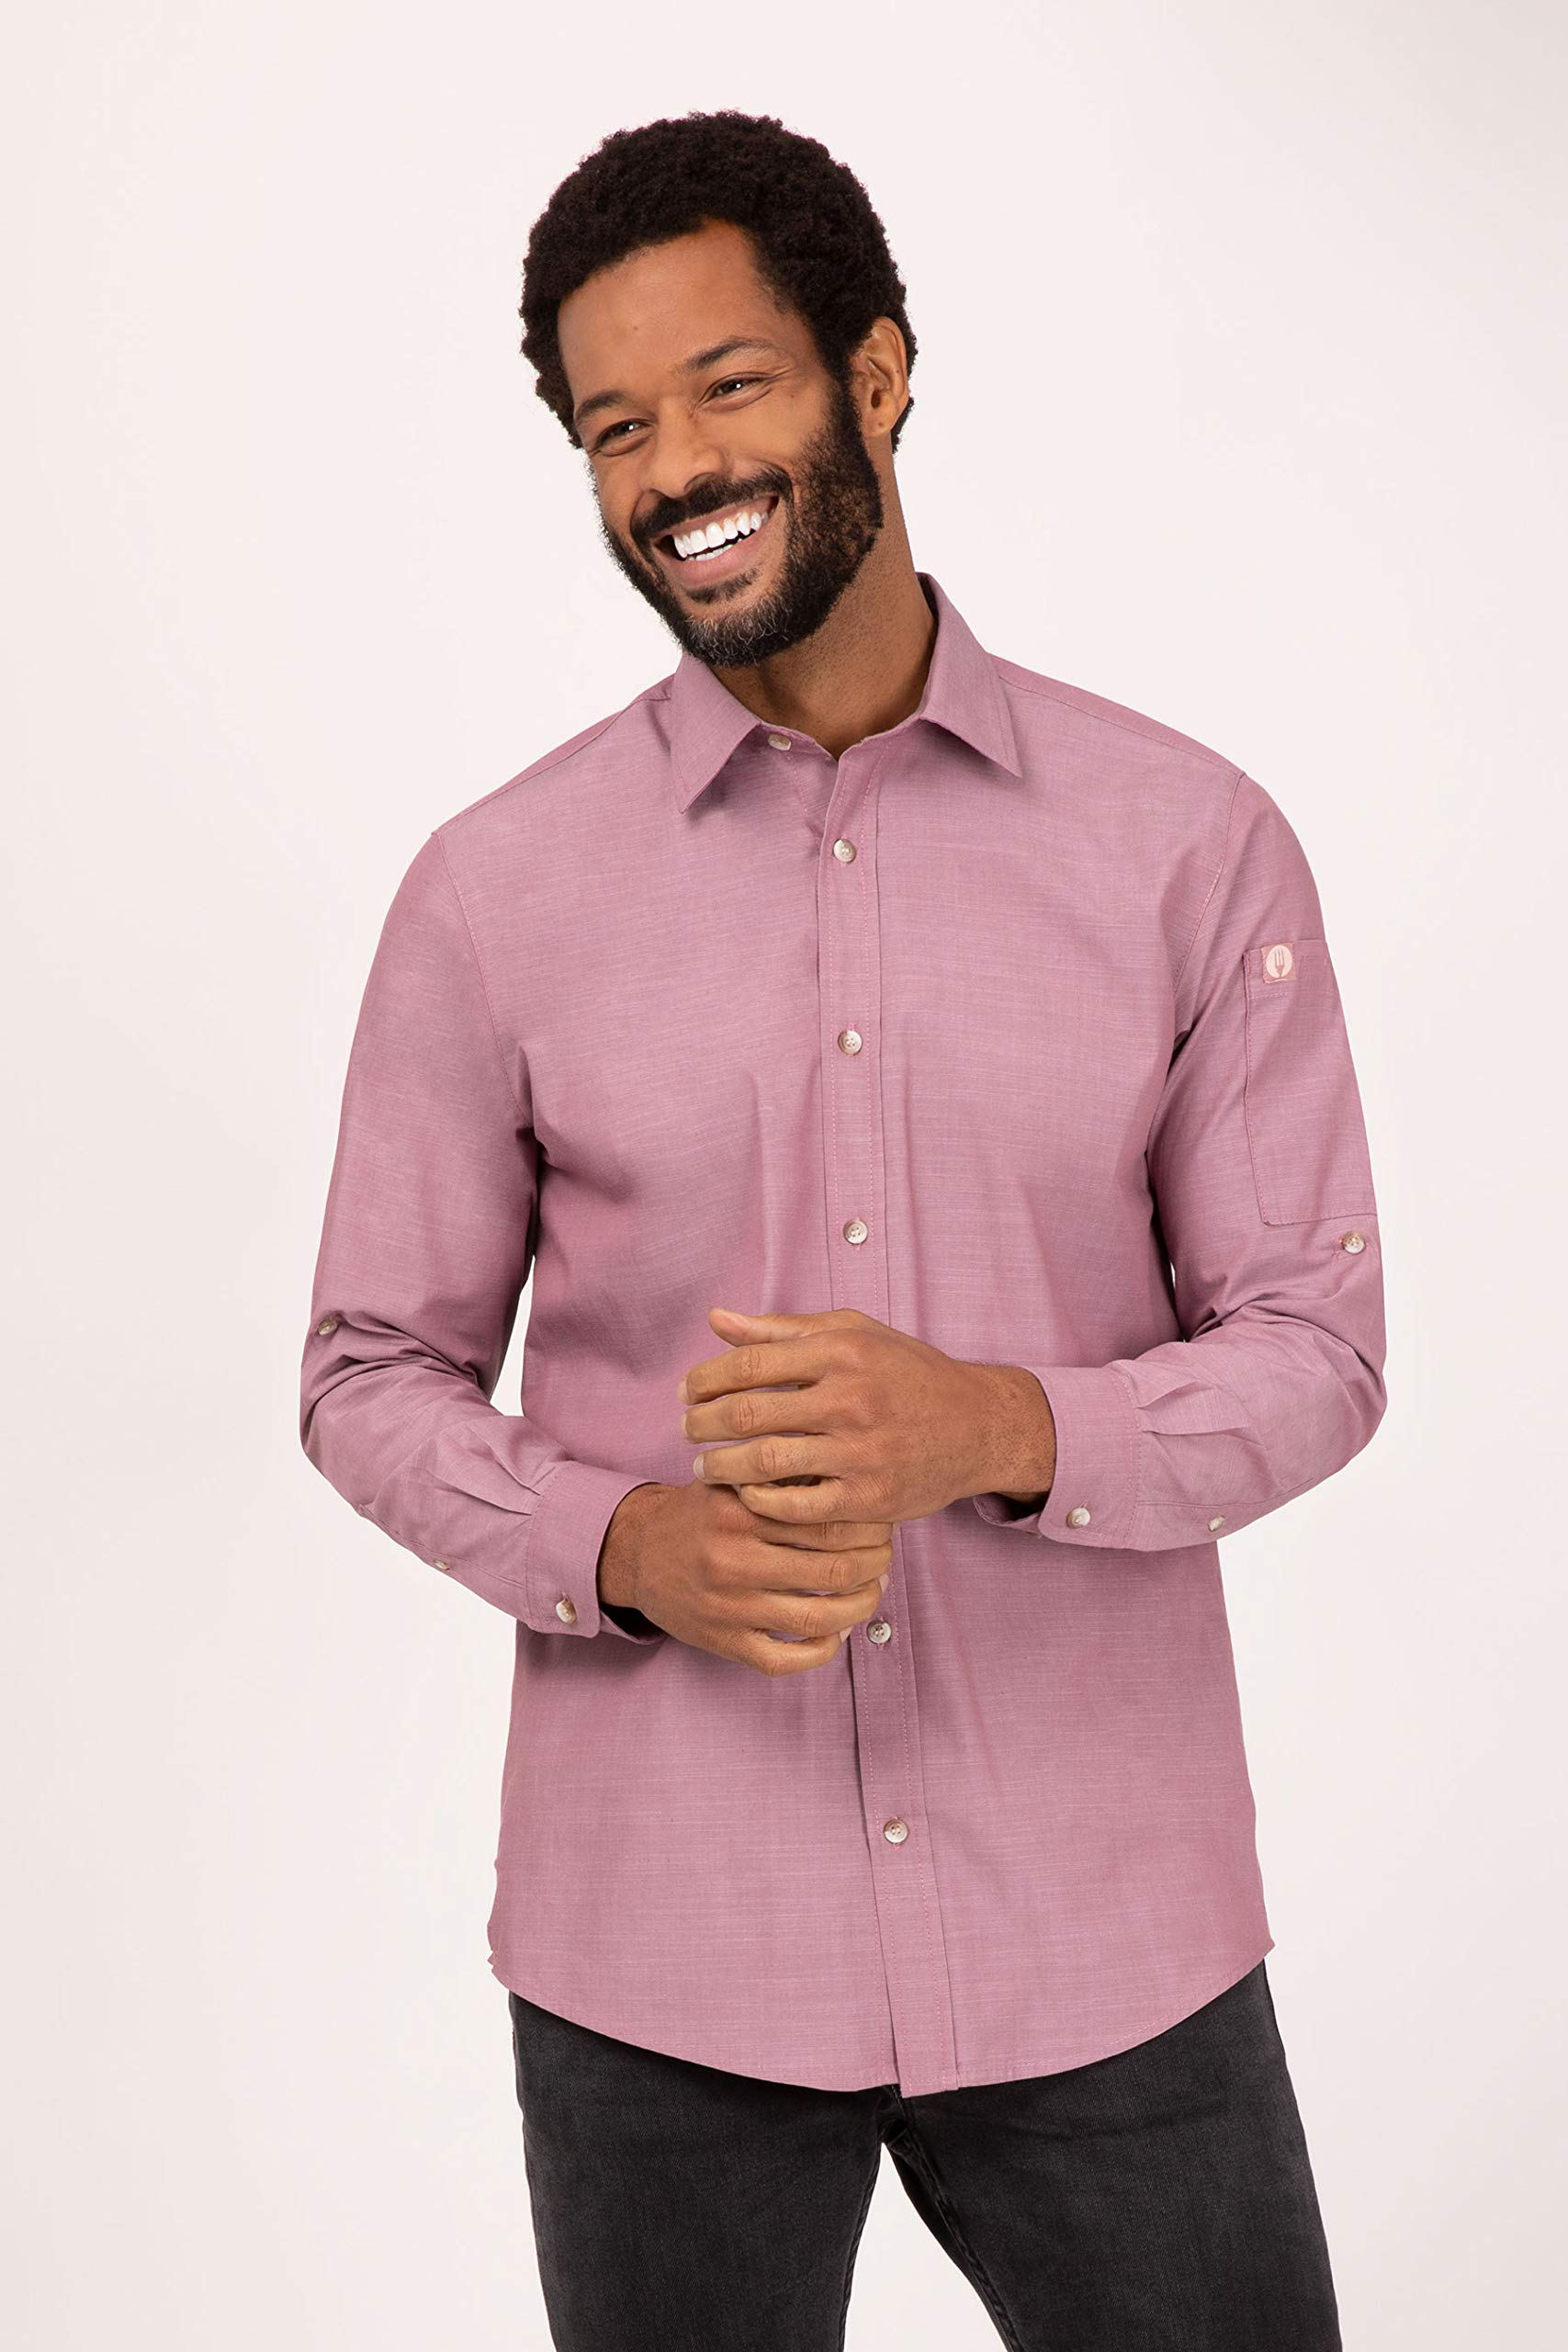 Chef Works Men's Chambray Shirt, Dusty Rose, 2X-Large by Chef Works